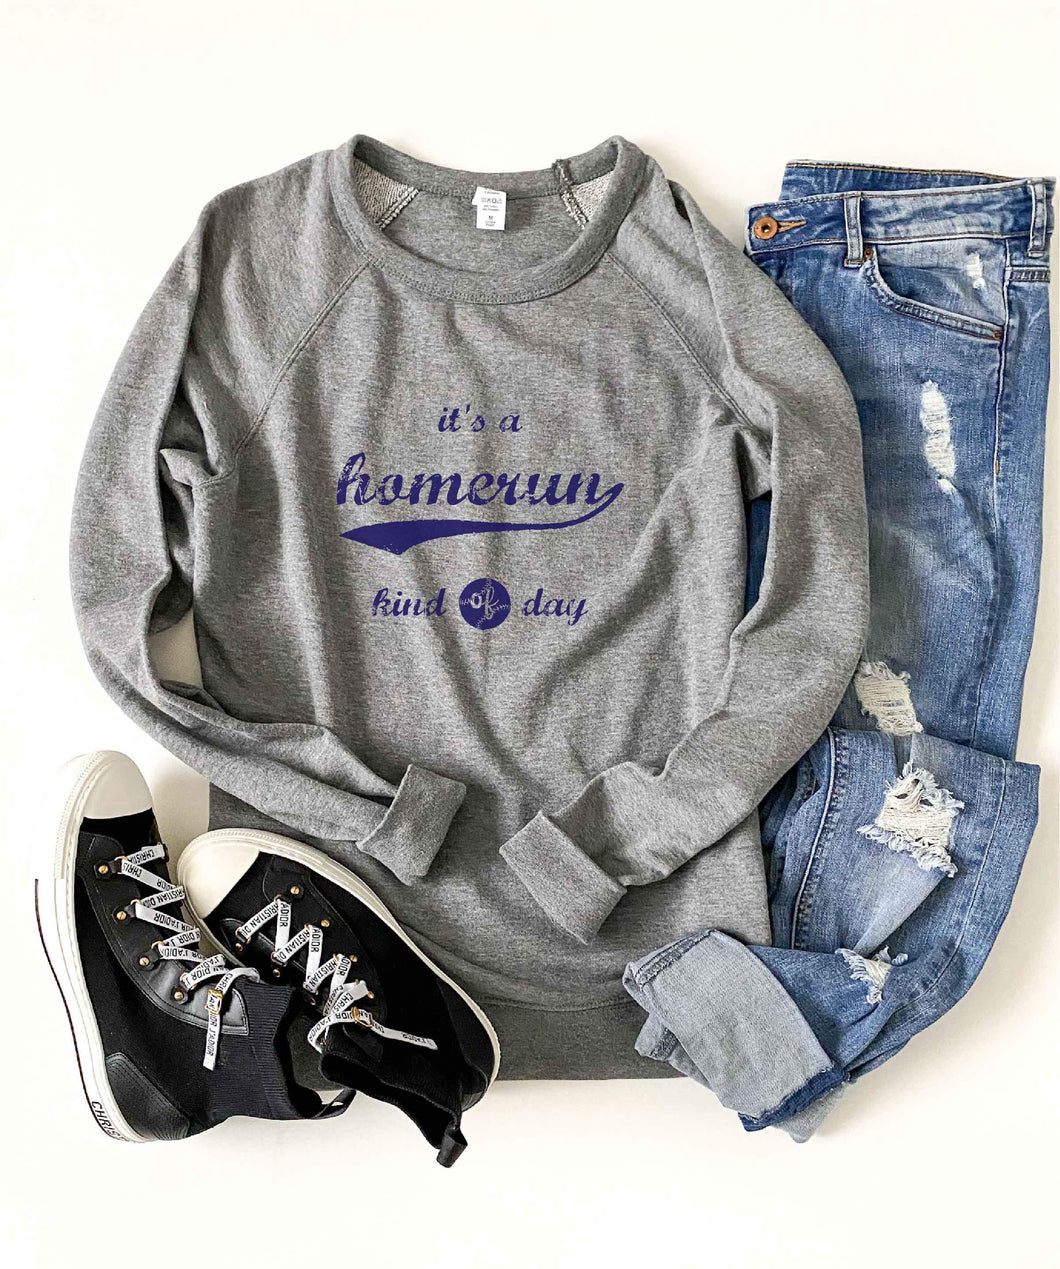 Homerun kind of day french terry raglan sweatshirt Baseball french Terry raglan Lane seven French Terry raglan